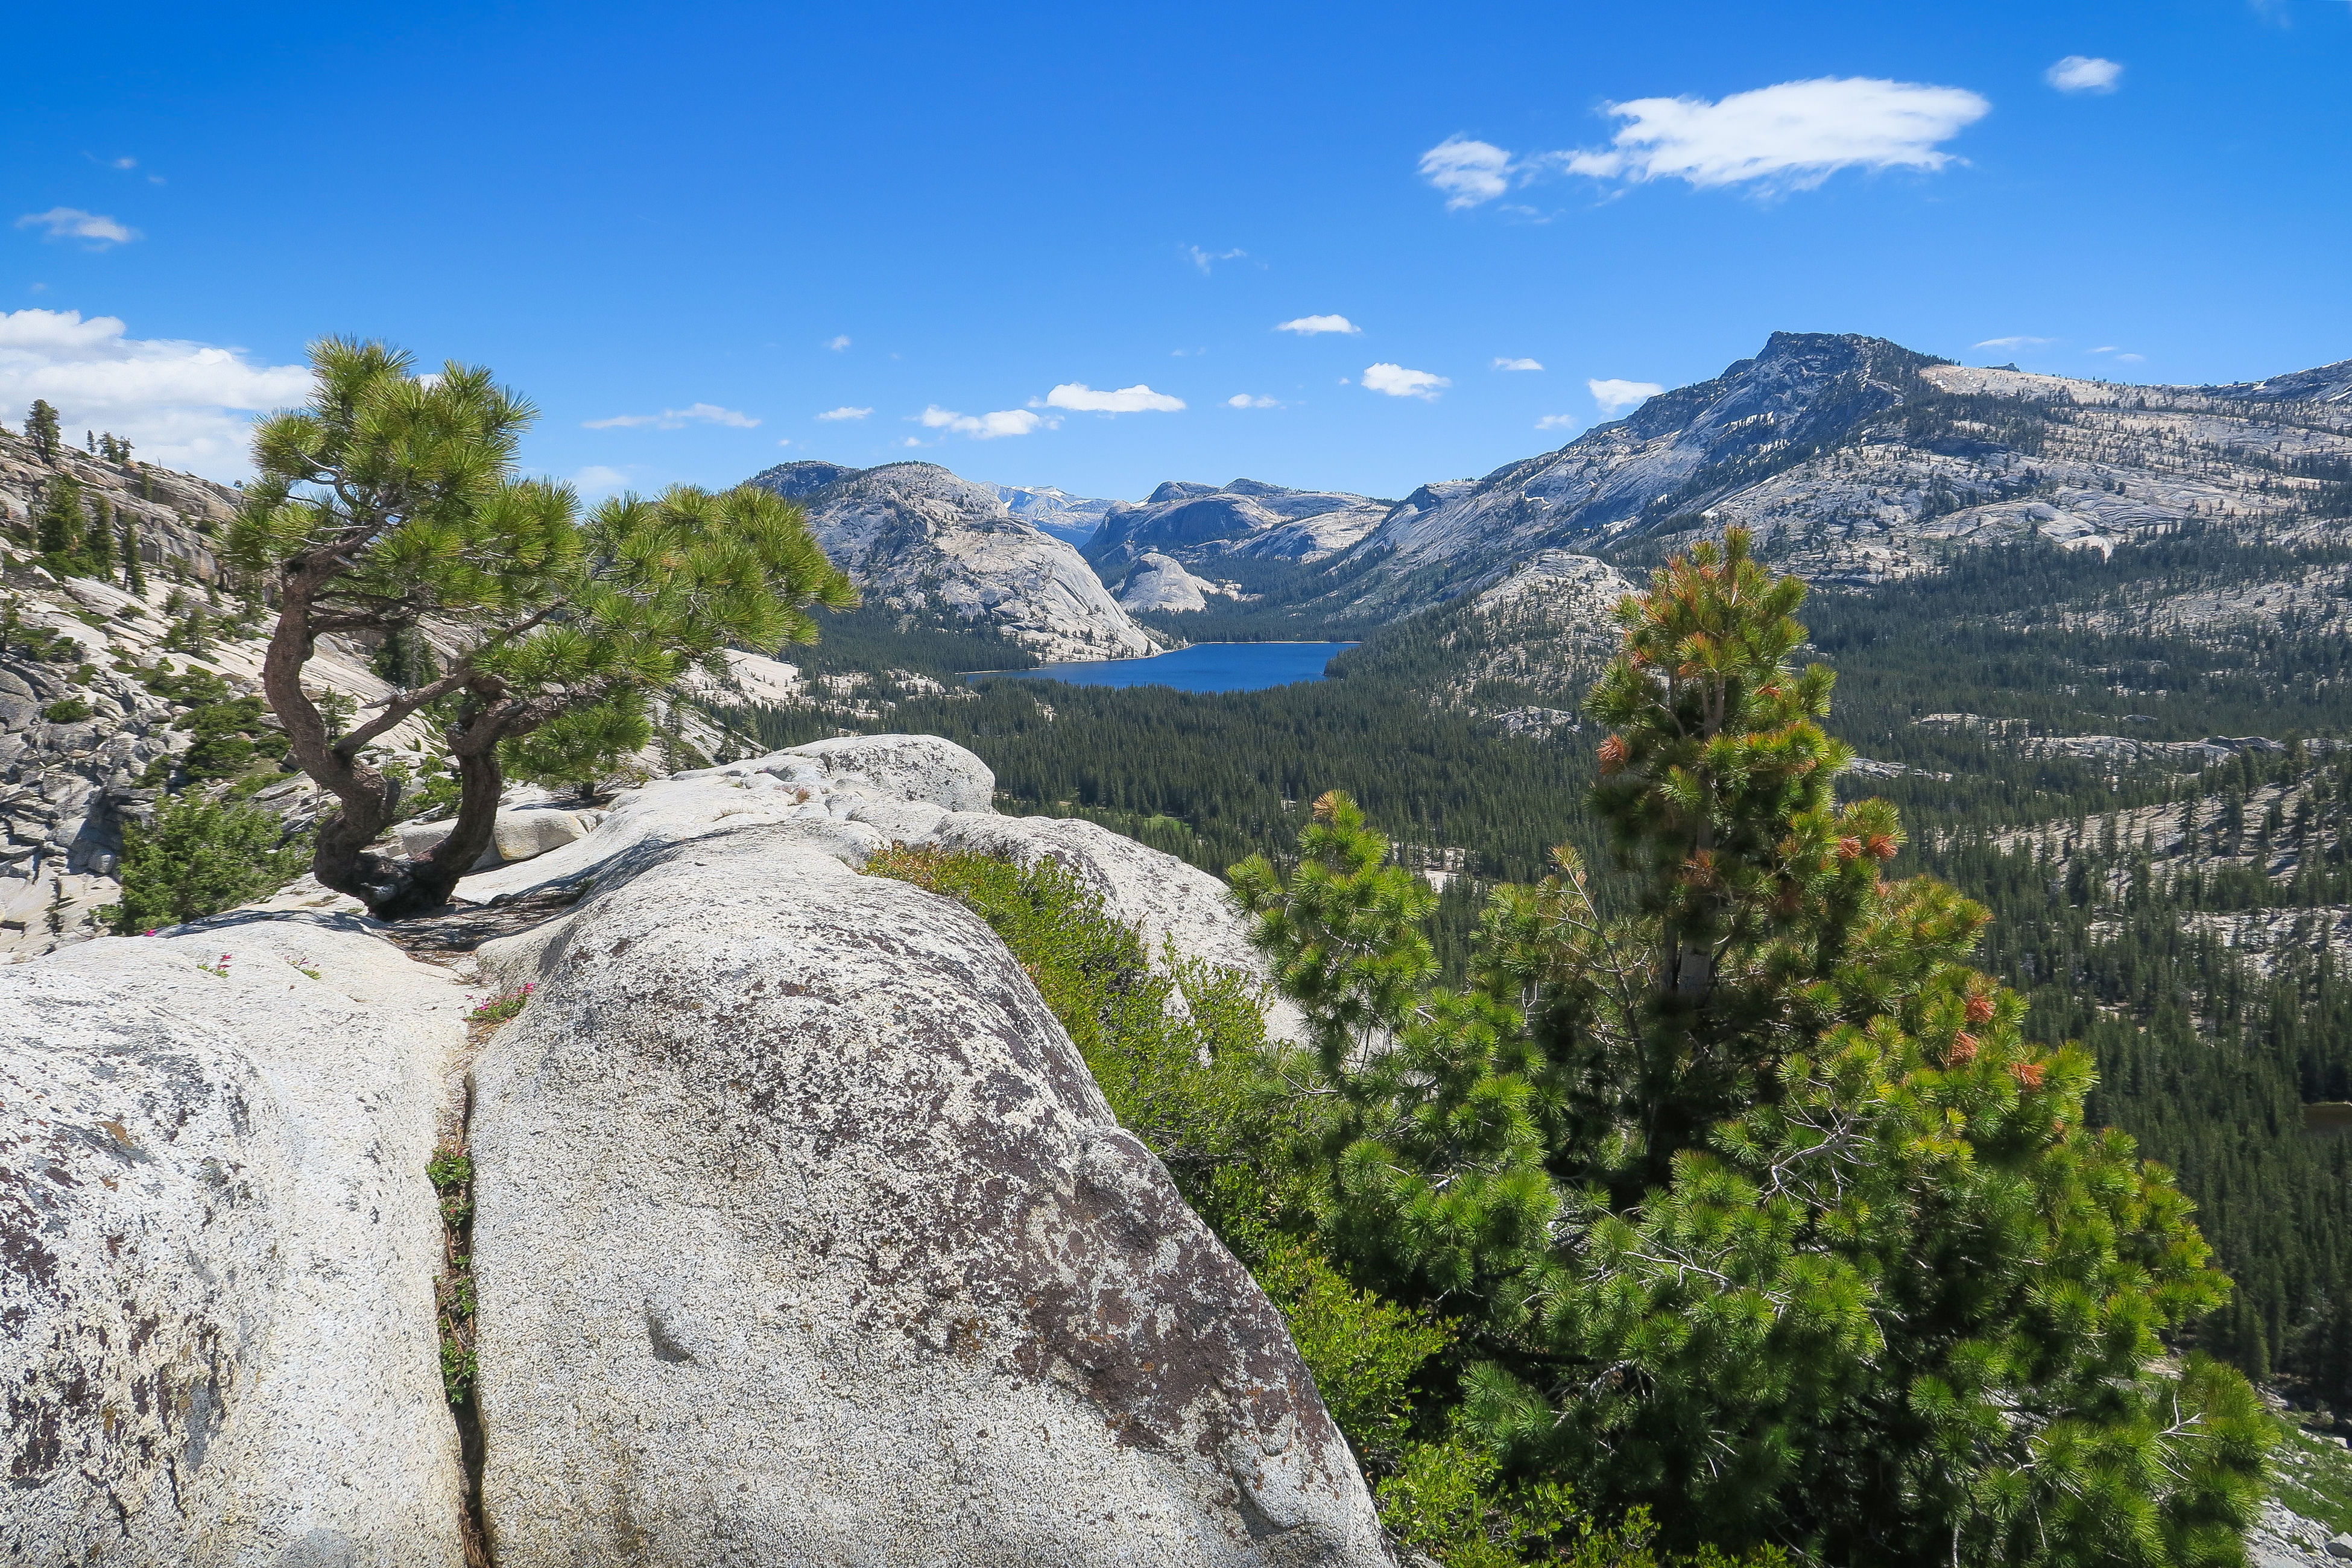 mountain, nature, tranquil scene, scenics, beauty in nature, tranquility, sky, landscape, tree, outdoors, mountain range, day, no people, scenery, range